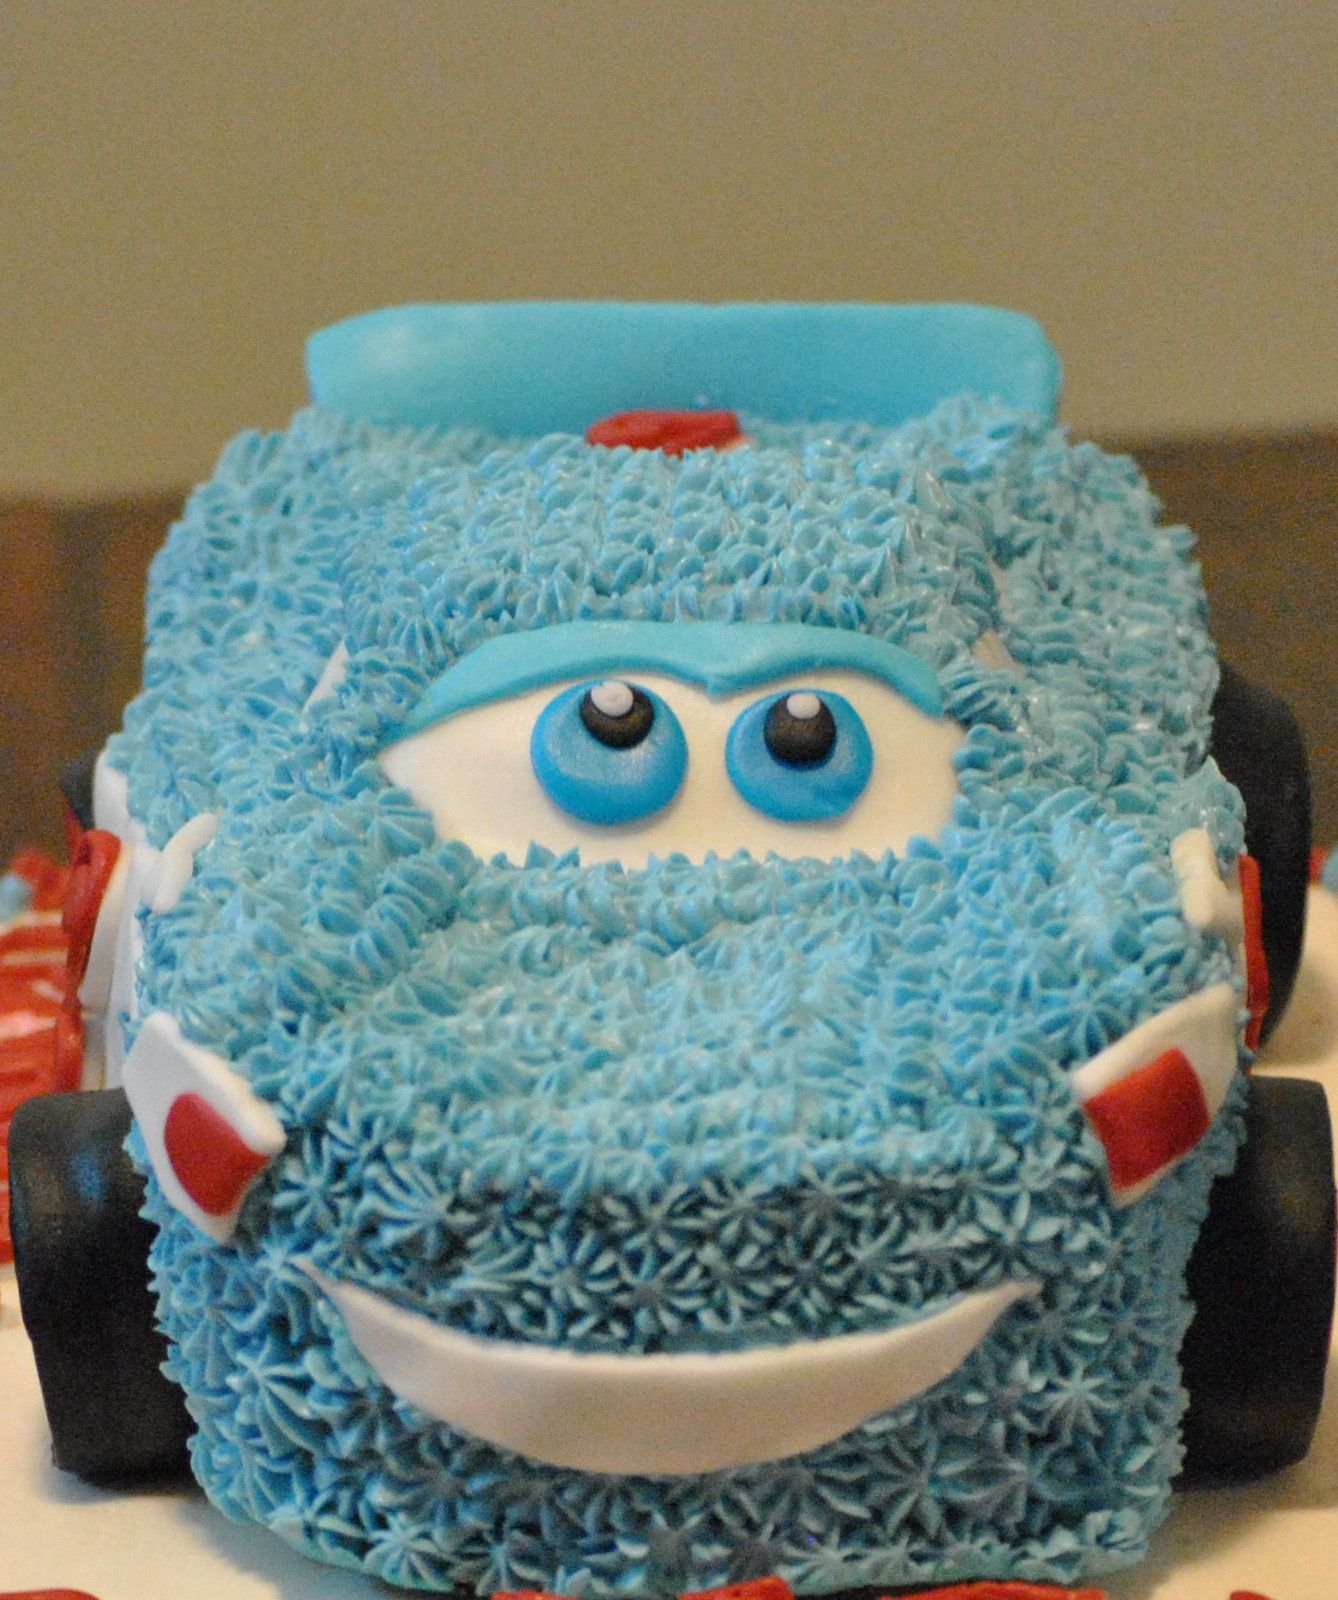 Lighting McQueen Cars Character Cake Frosted With Buttercream And Fondant Make Birthday Swiss